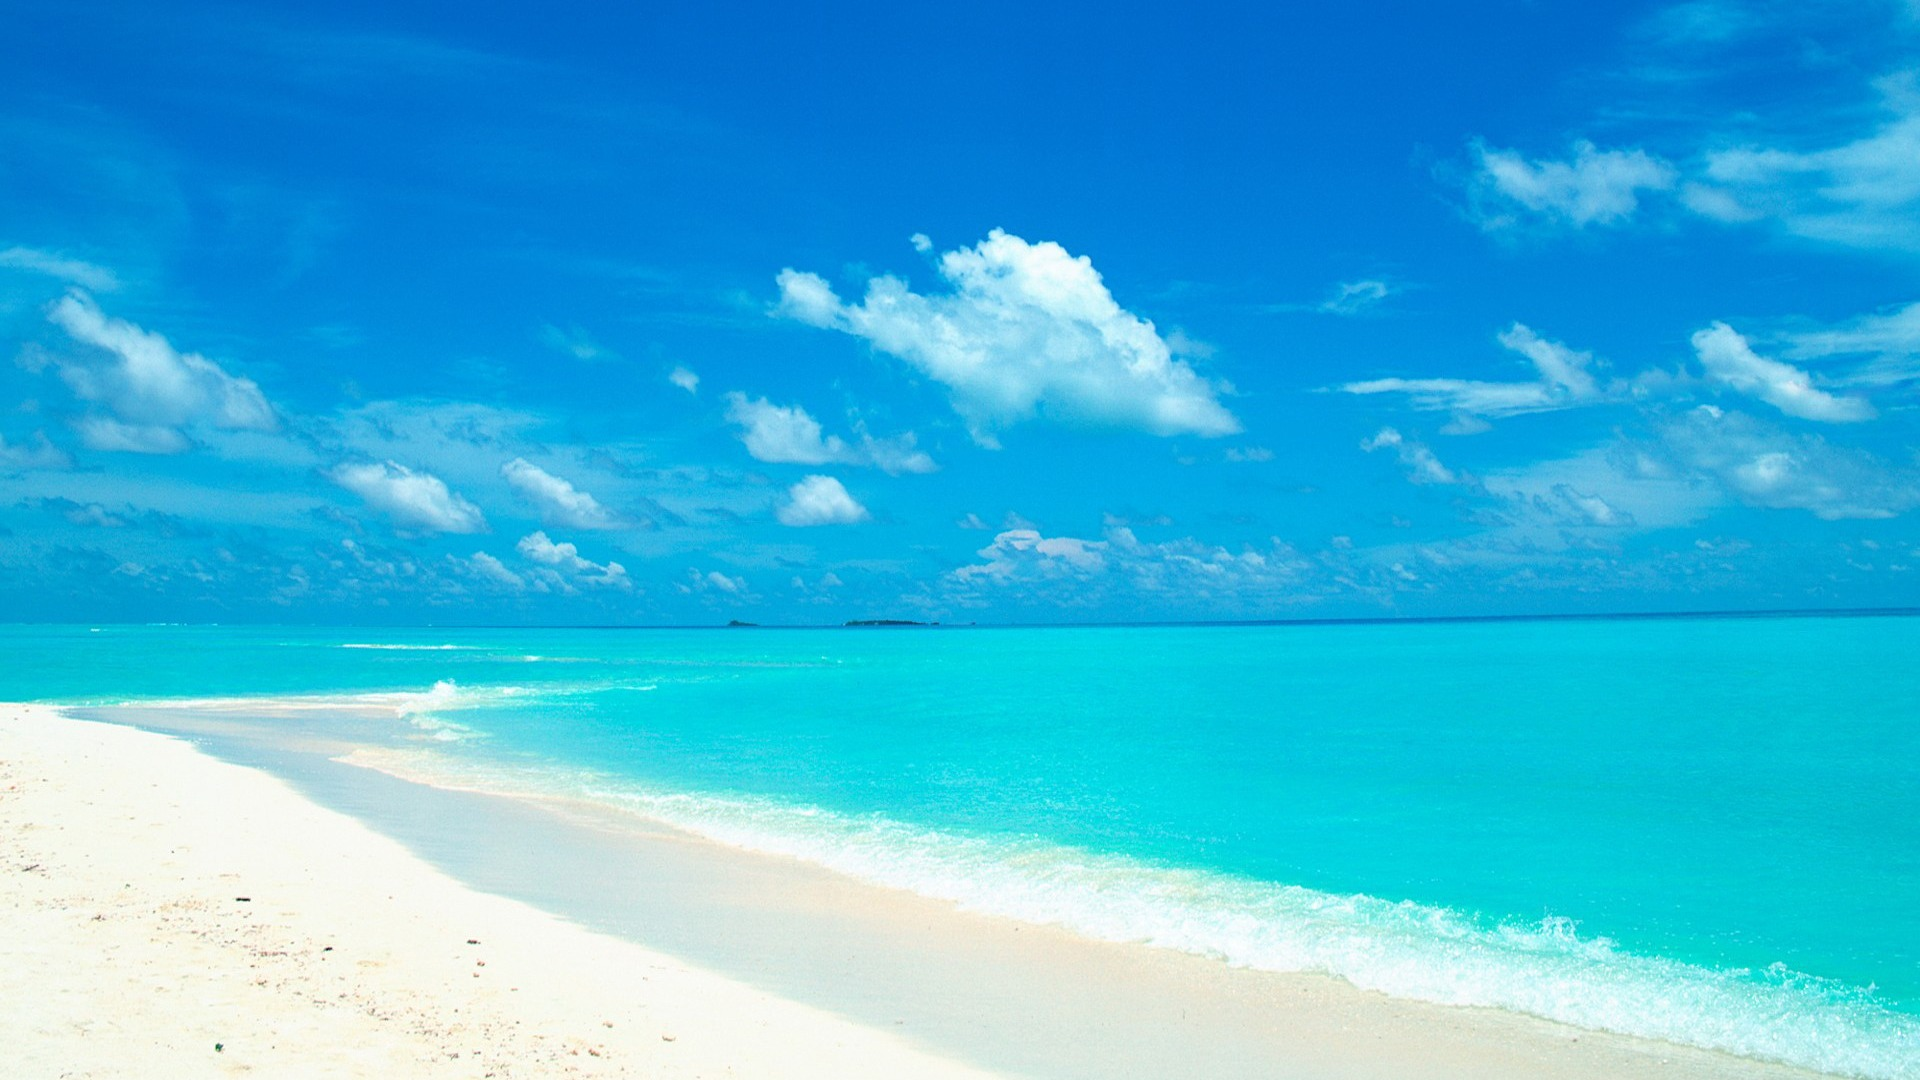 Blue Sky And Water In The White Sand Beach Wallpaper X